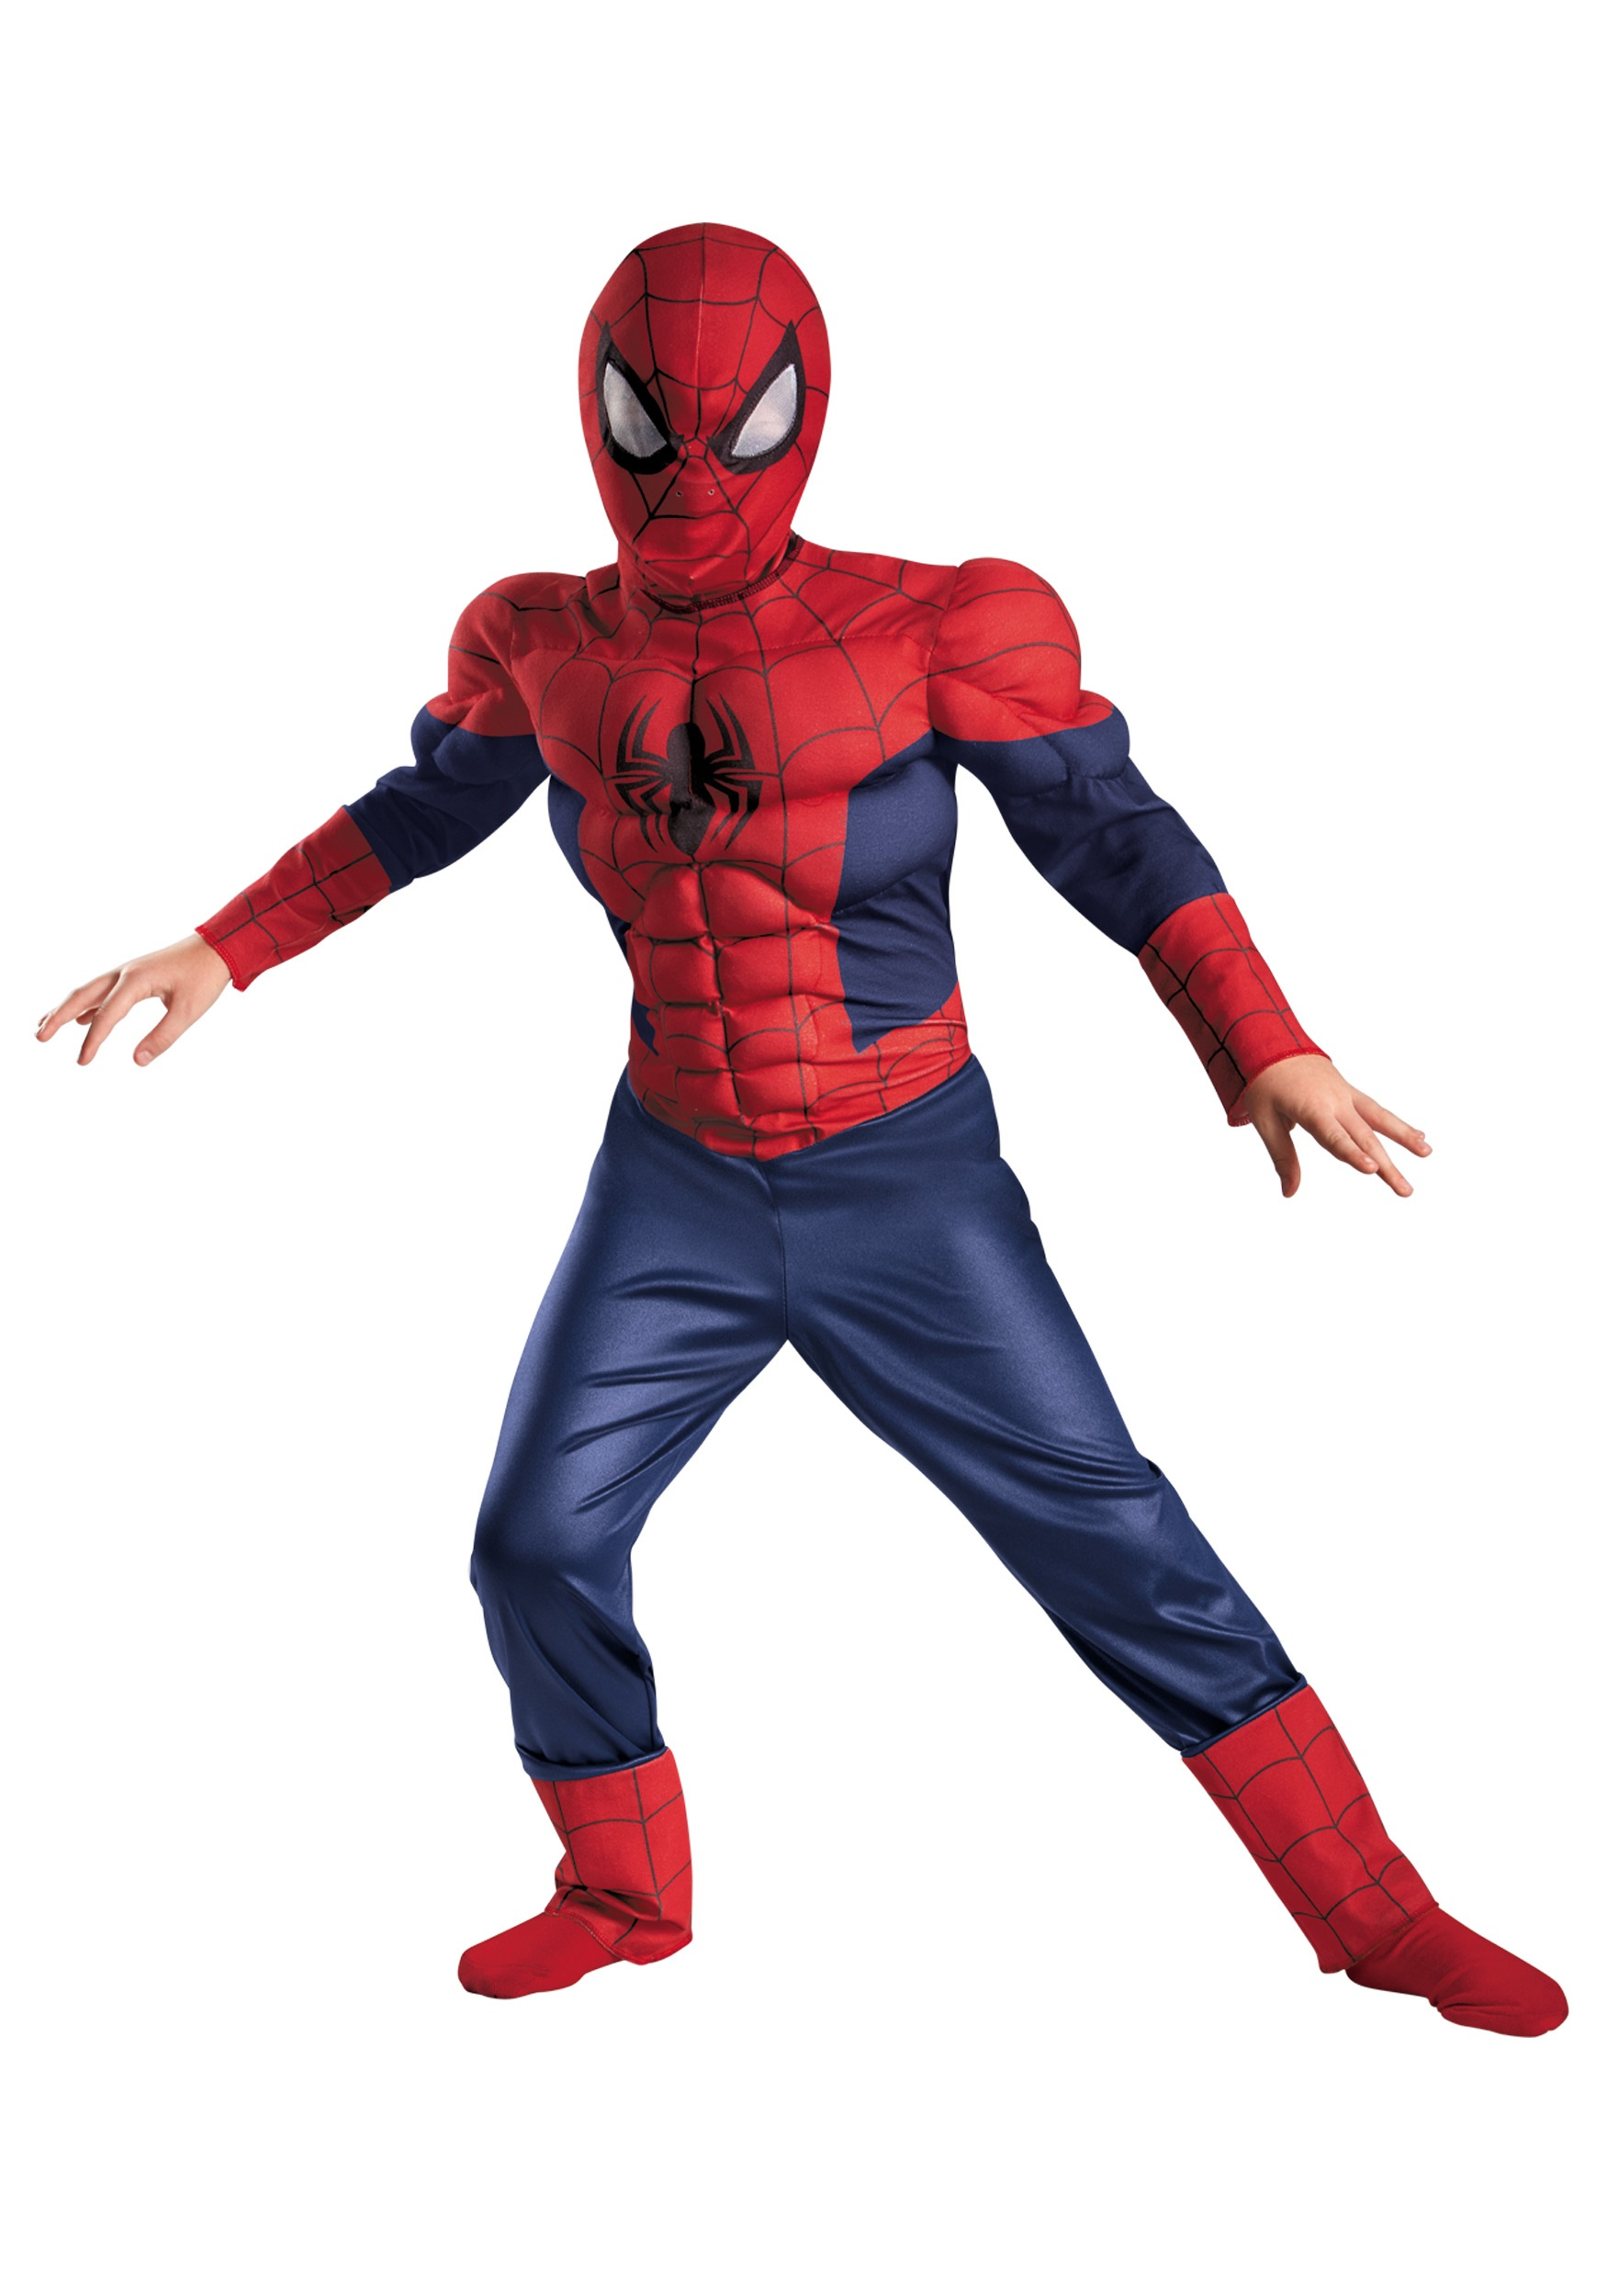 Boys Ultimate Spider-Man Classic Muscle Costume  sc 1 st  Halloween Costumes & Boys Ultimate Spider-Man Classic Muscle Costume - Halloween Costumes